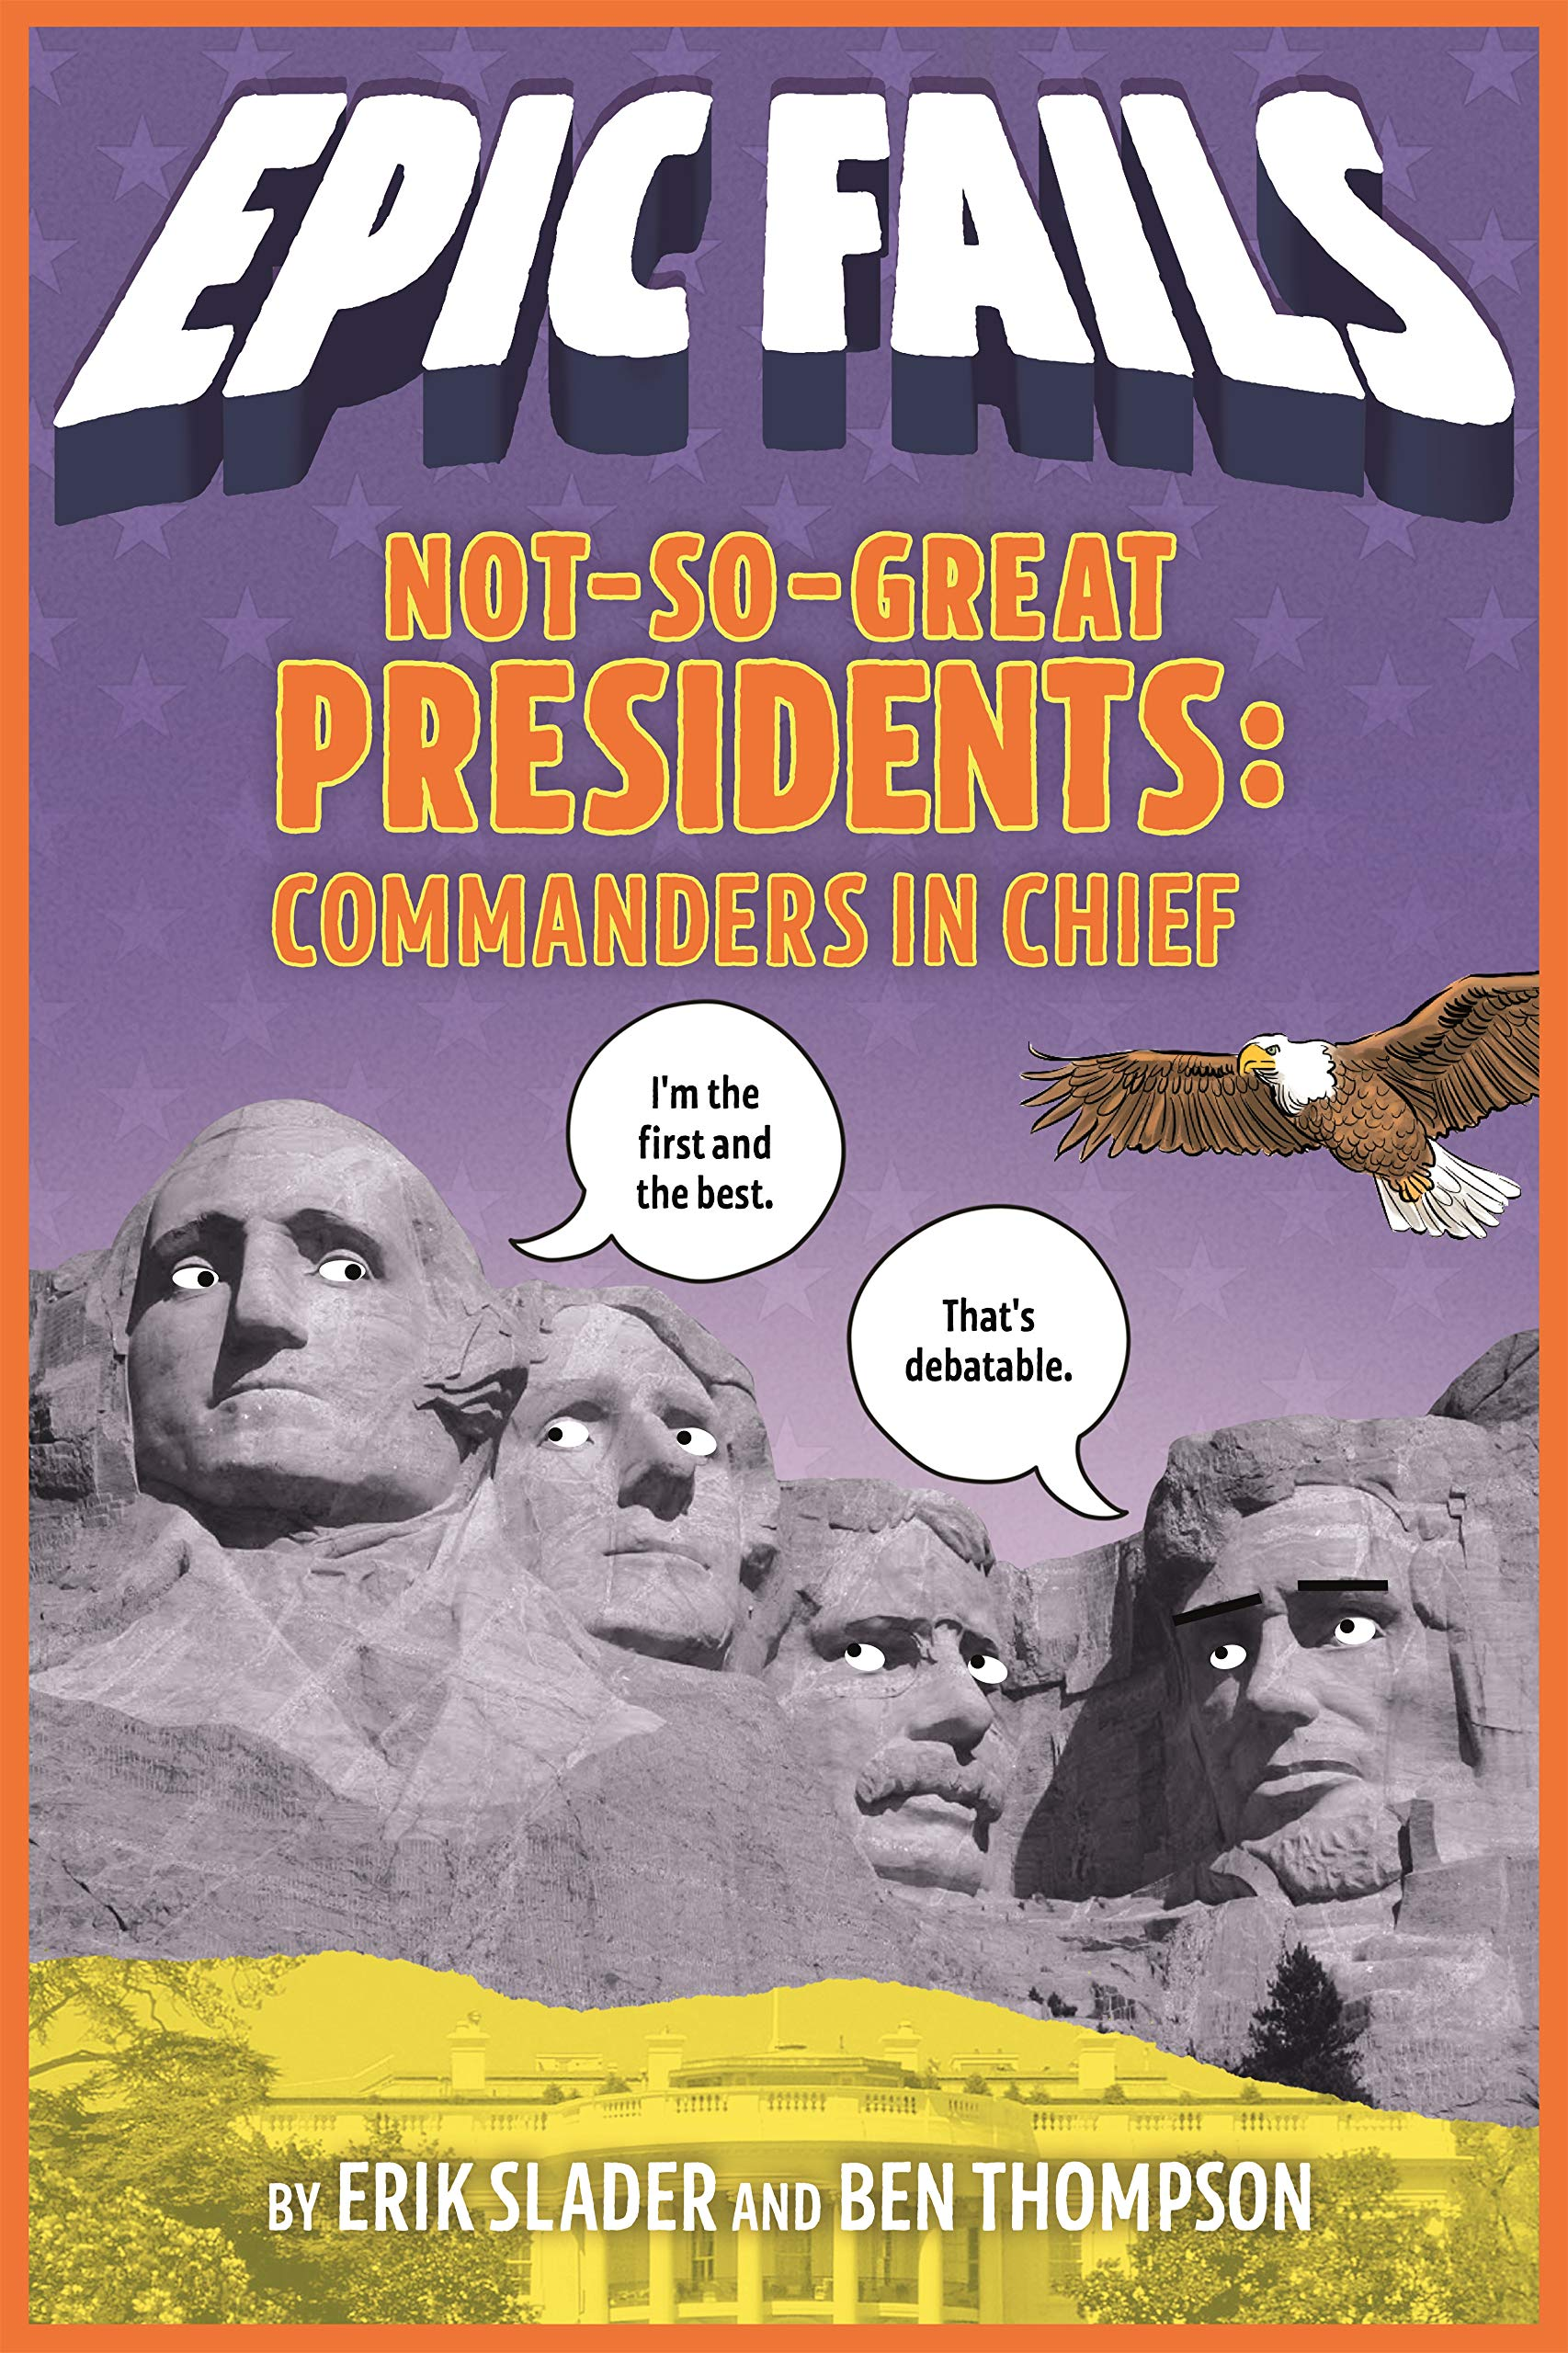 Not-So-Great Presidents: Commanders in Chief (Epic Fails #3) Hardcover – January 15, 2019 Ben Thompson Erik Slader Tim Foley Roaring Brook Press